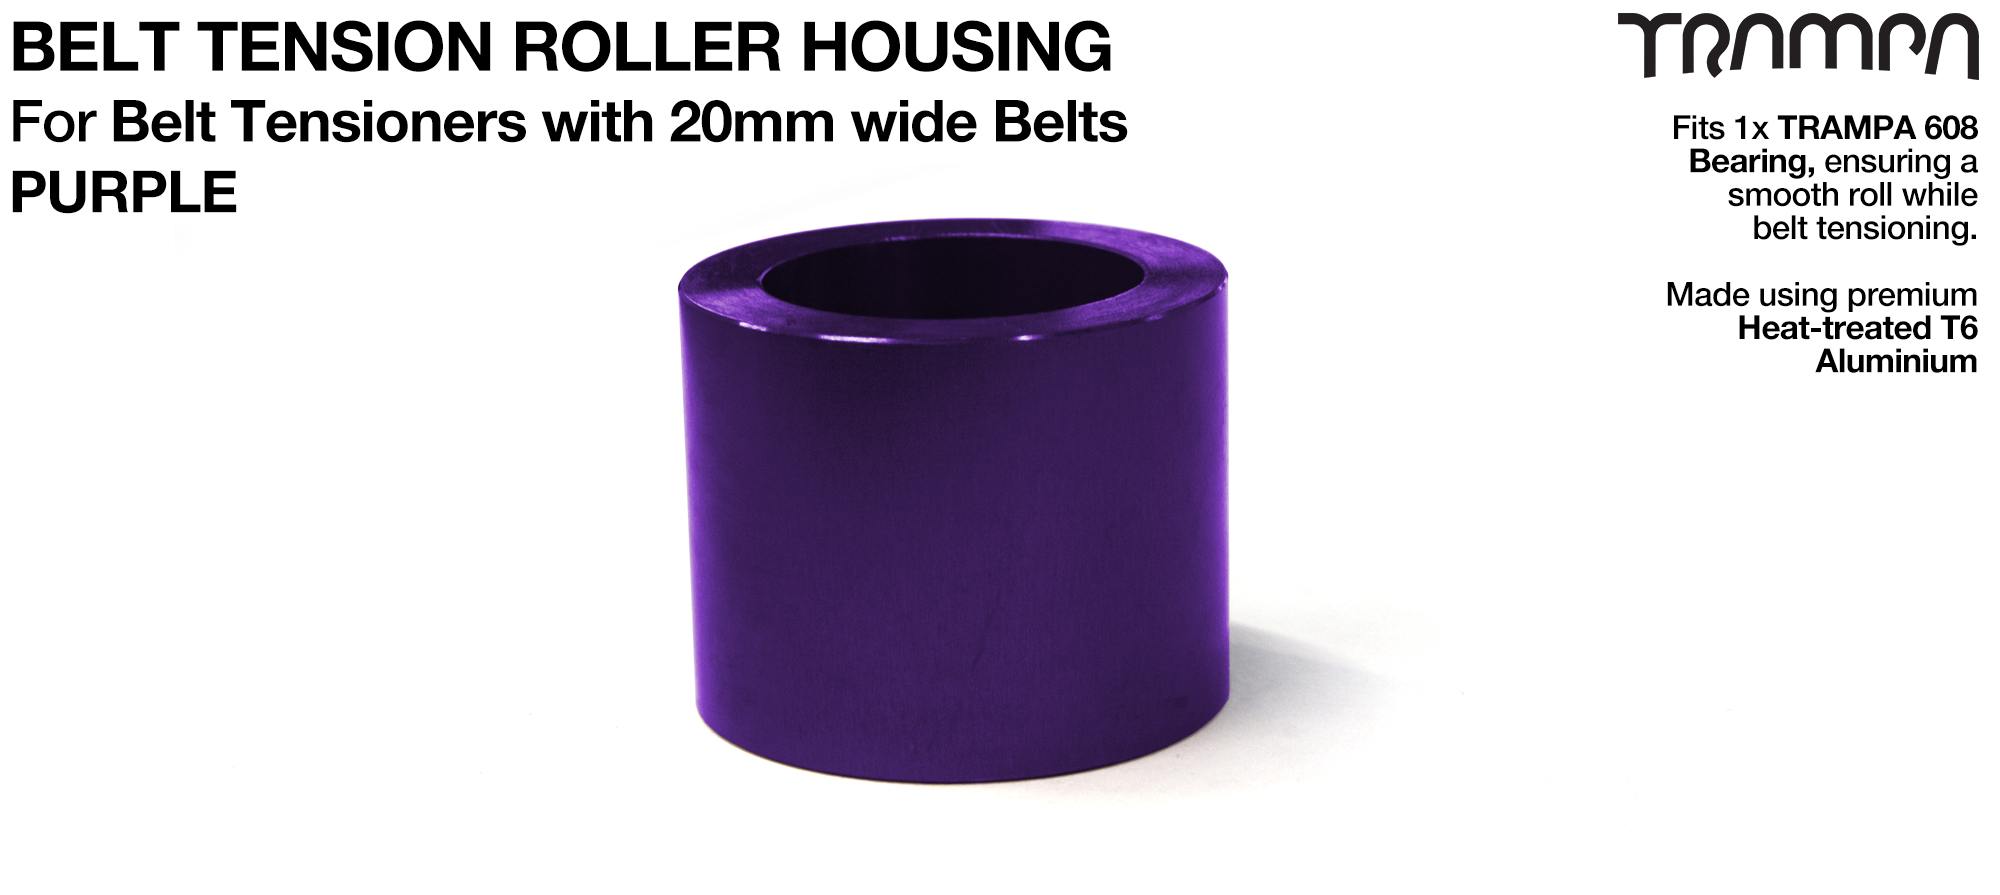 Belt Tension Roller Housing for 20mm Belts - PURPLE